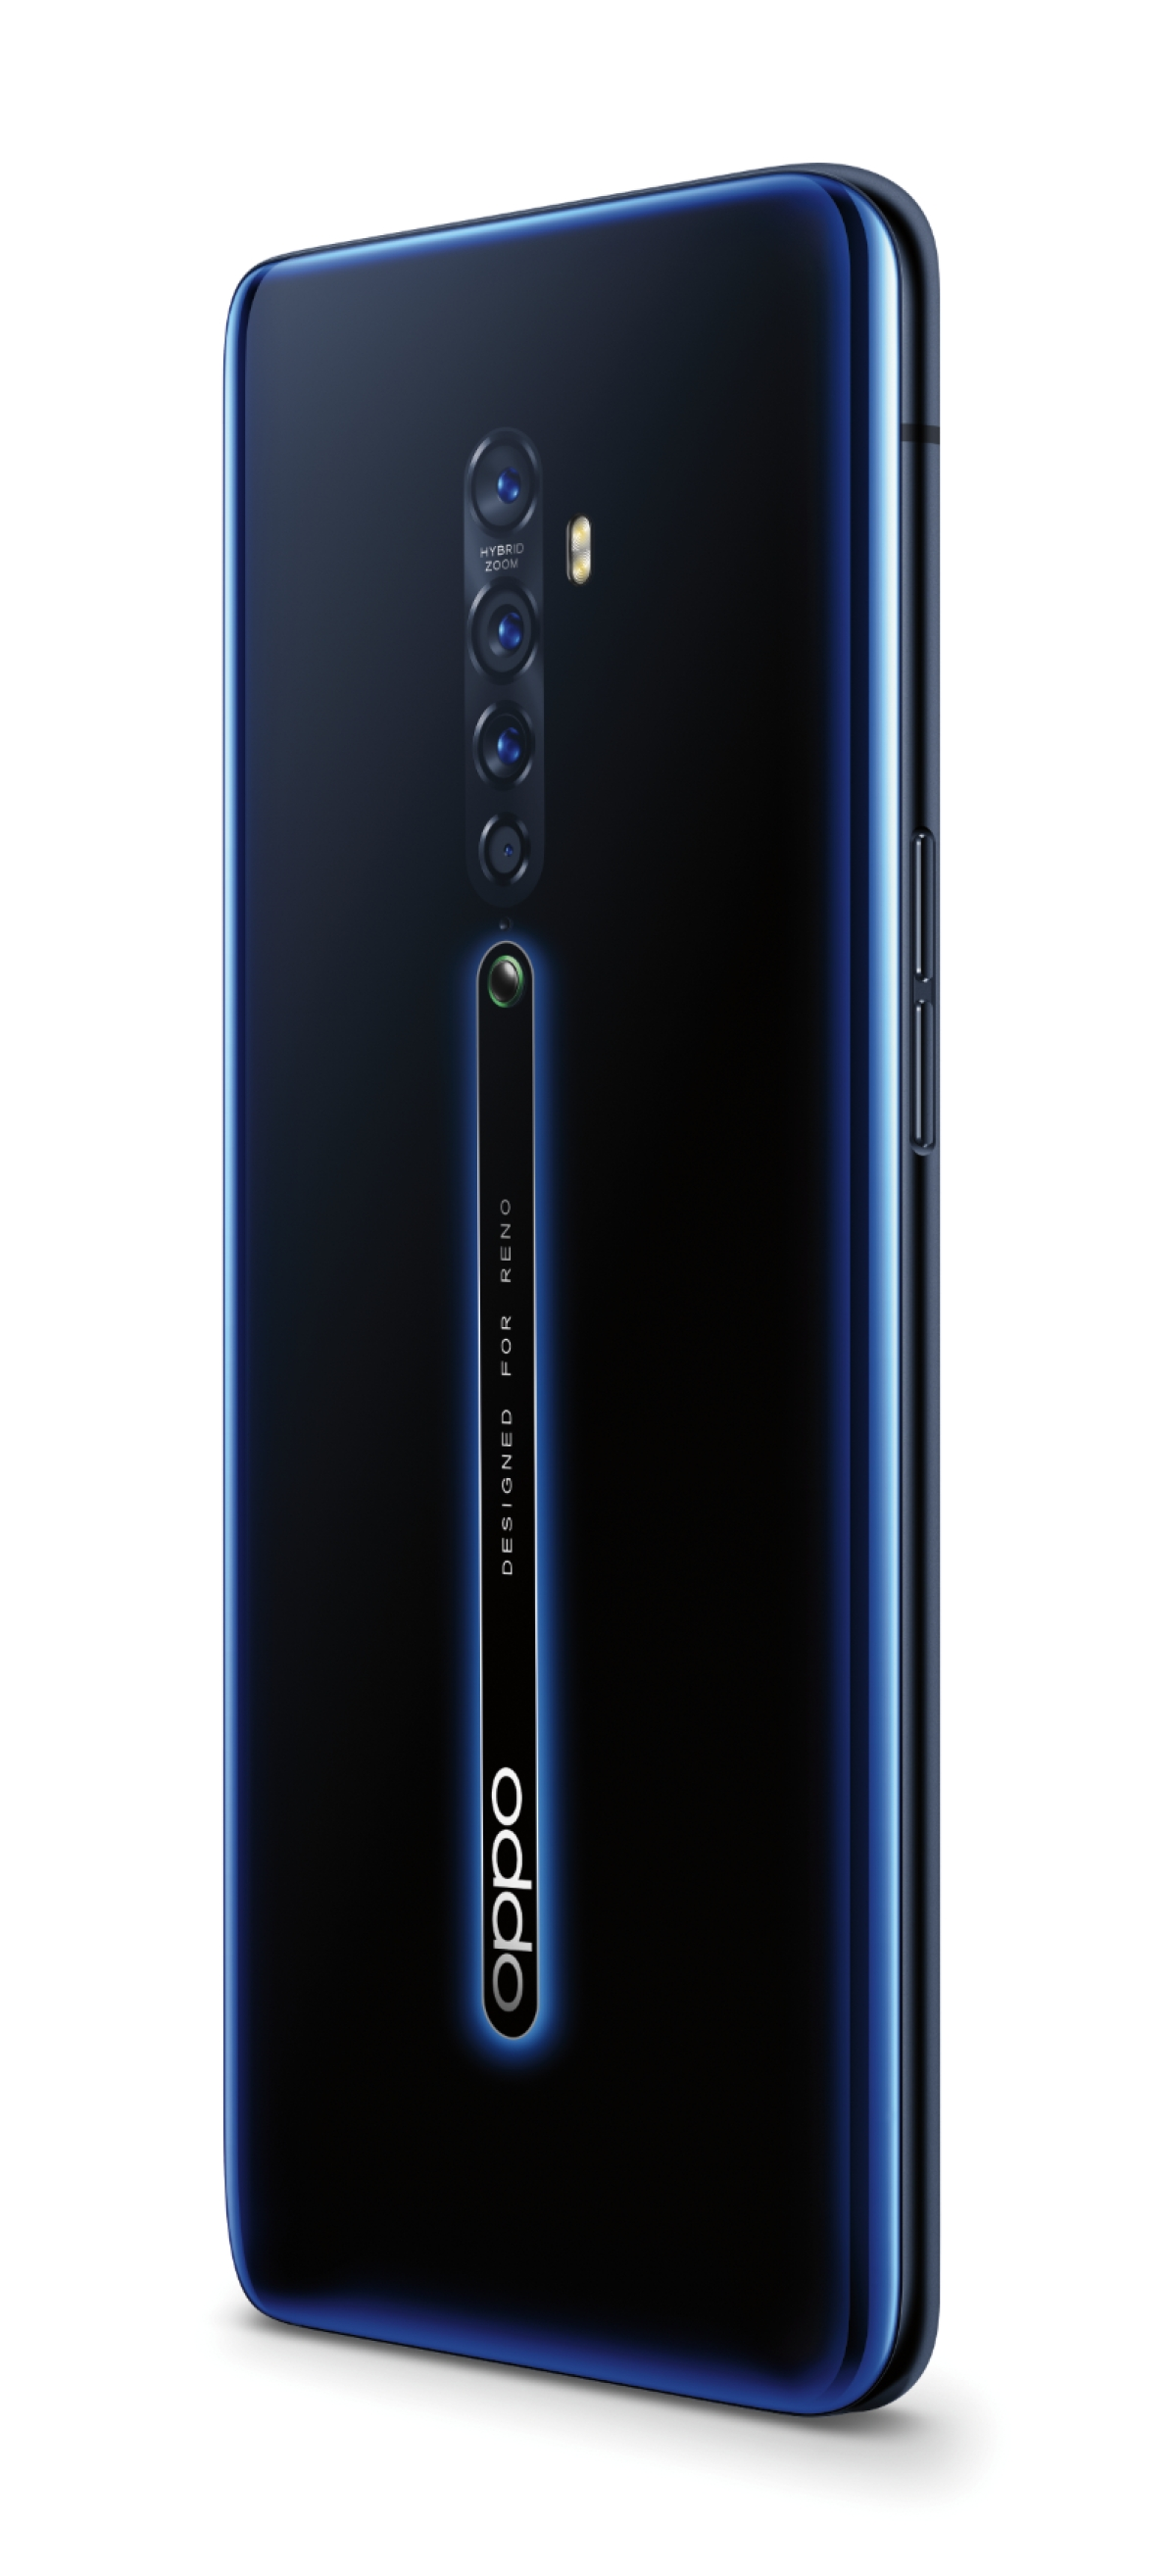 OPPO Reno2 is the Ultimate Smartphone you need this year